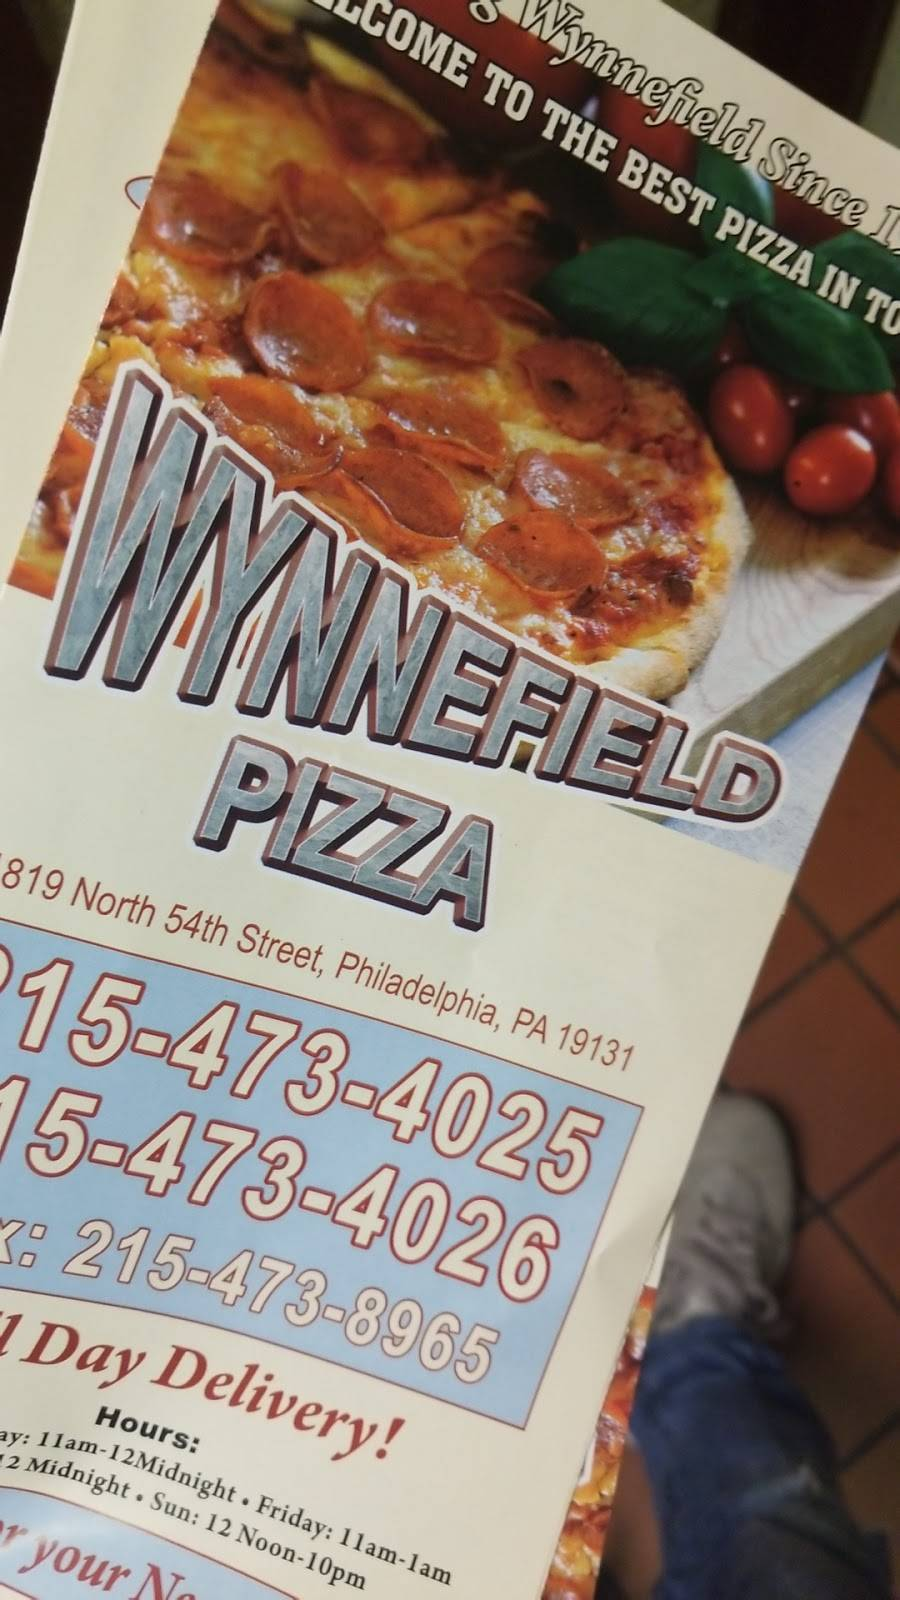 Wynnefield Pizza | meal delivery | 1819 N 54th St, Philadelphia, PA 19131, USA | 2154734025 OR +1 215-473-4025